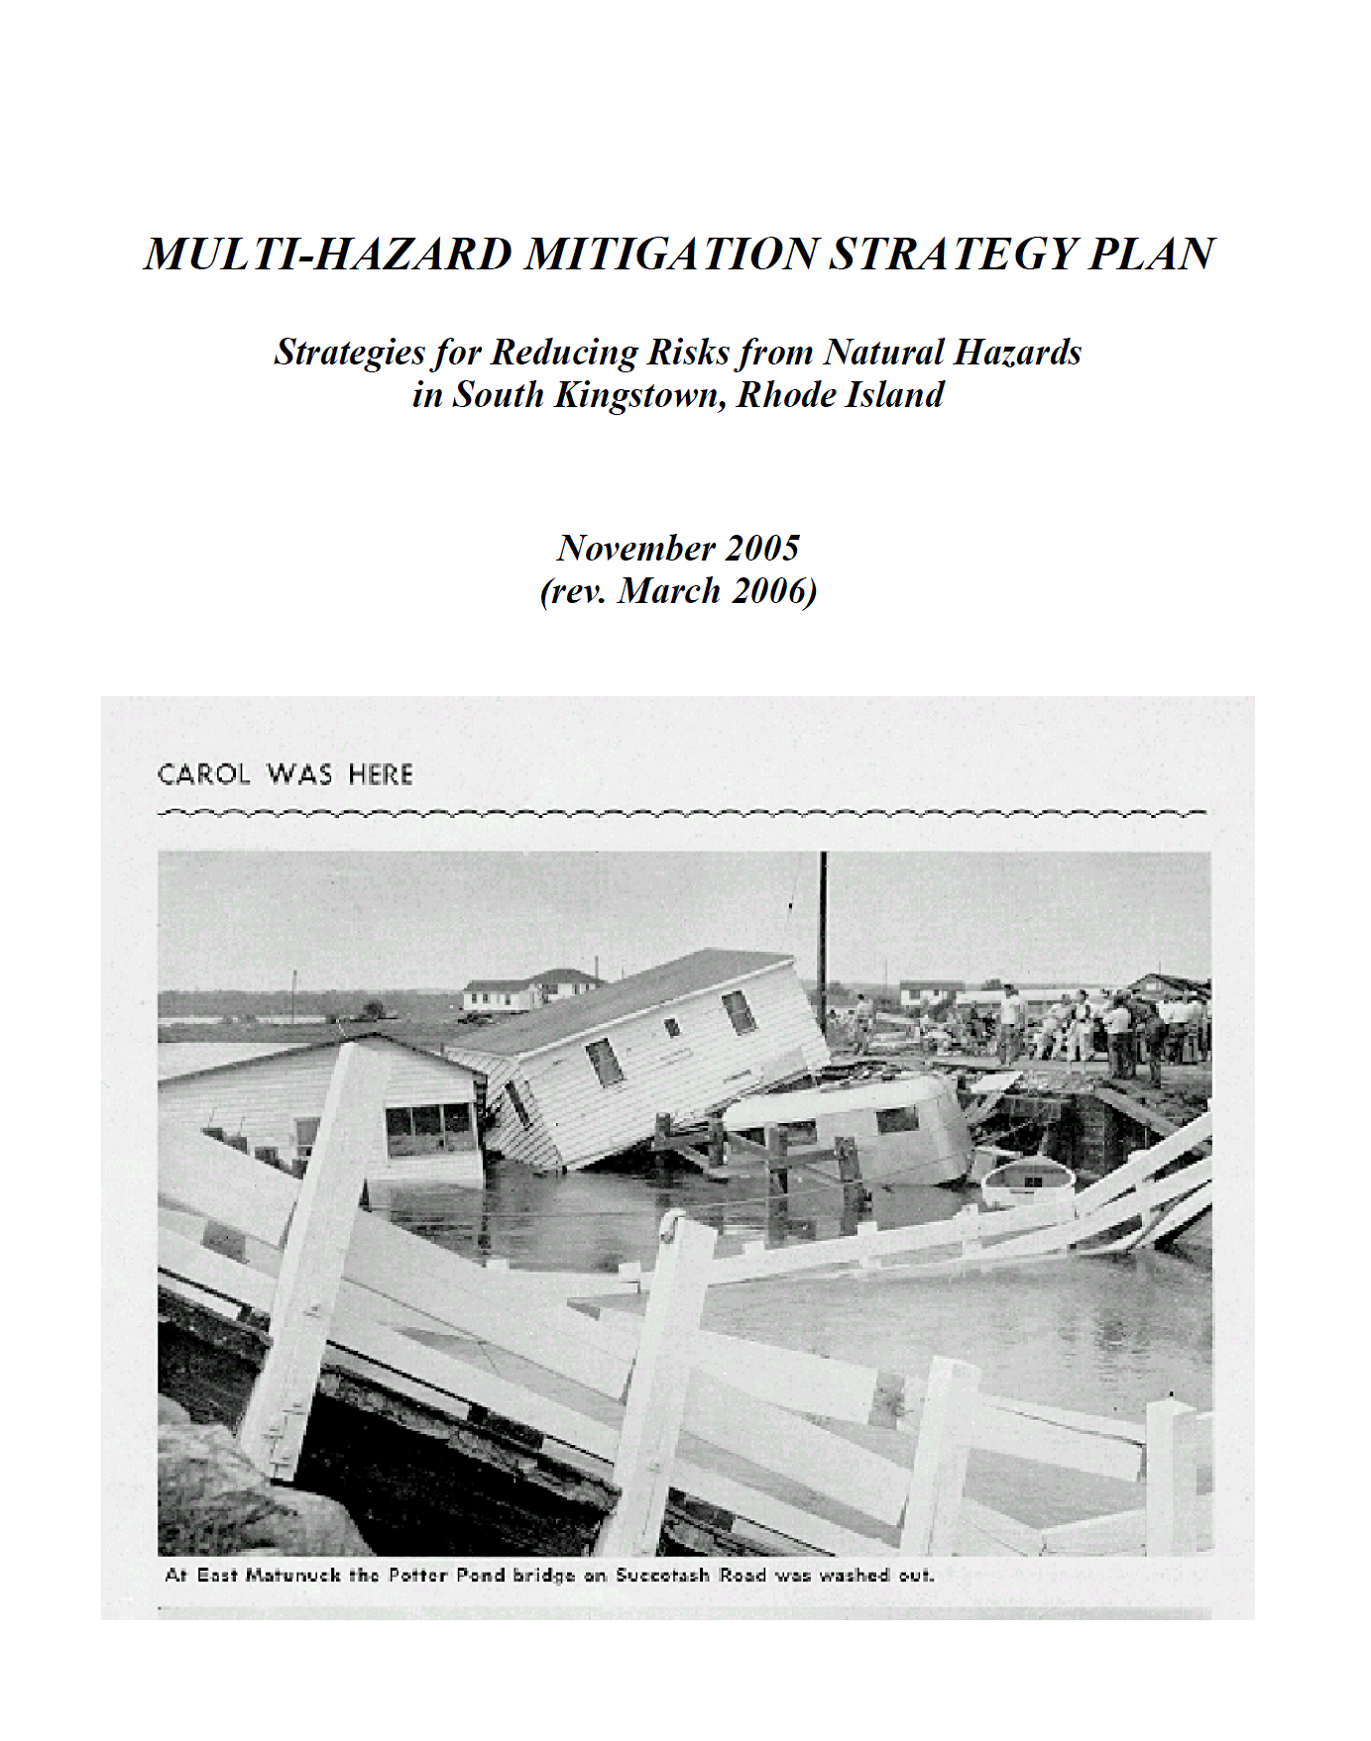 The  Multi-Hazard Mitigation Strategy Plan  is the Town's strategy for preparing for and responding to storms, floods, and other natural disasters.